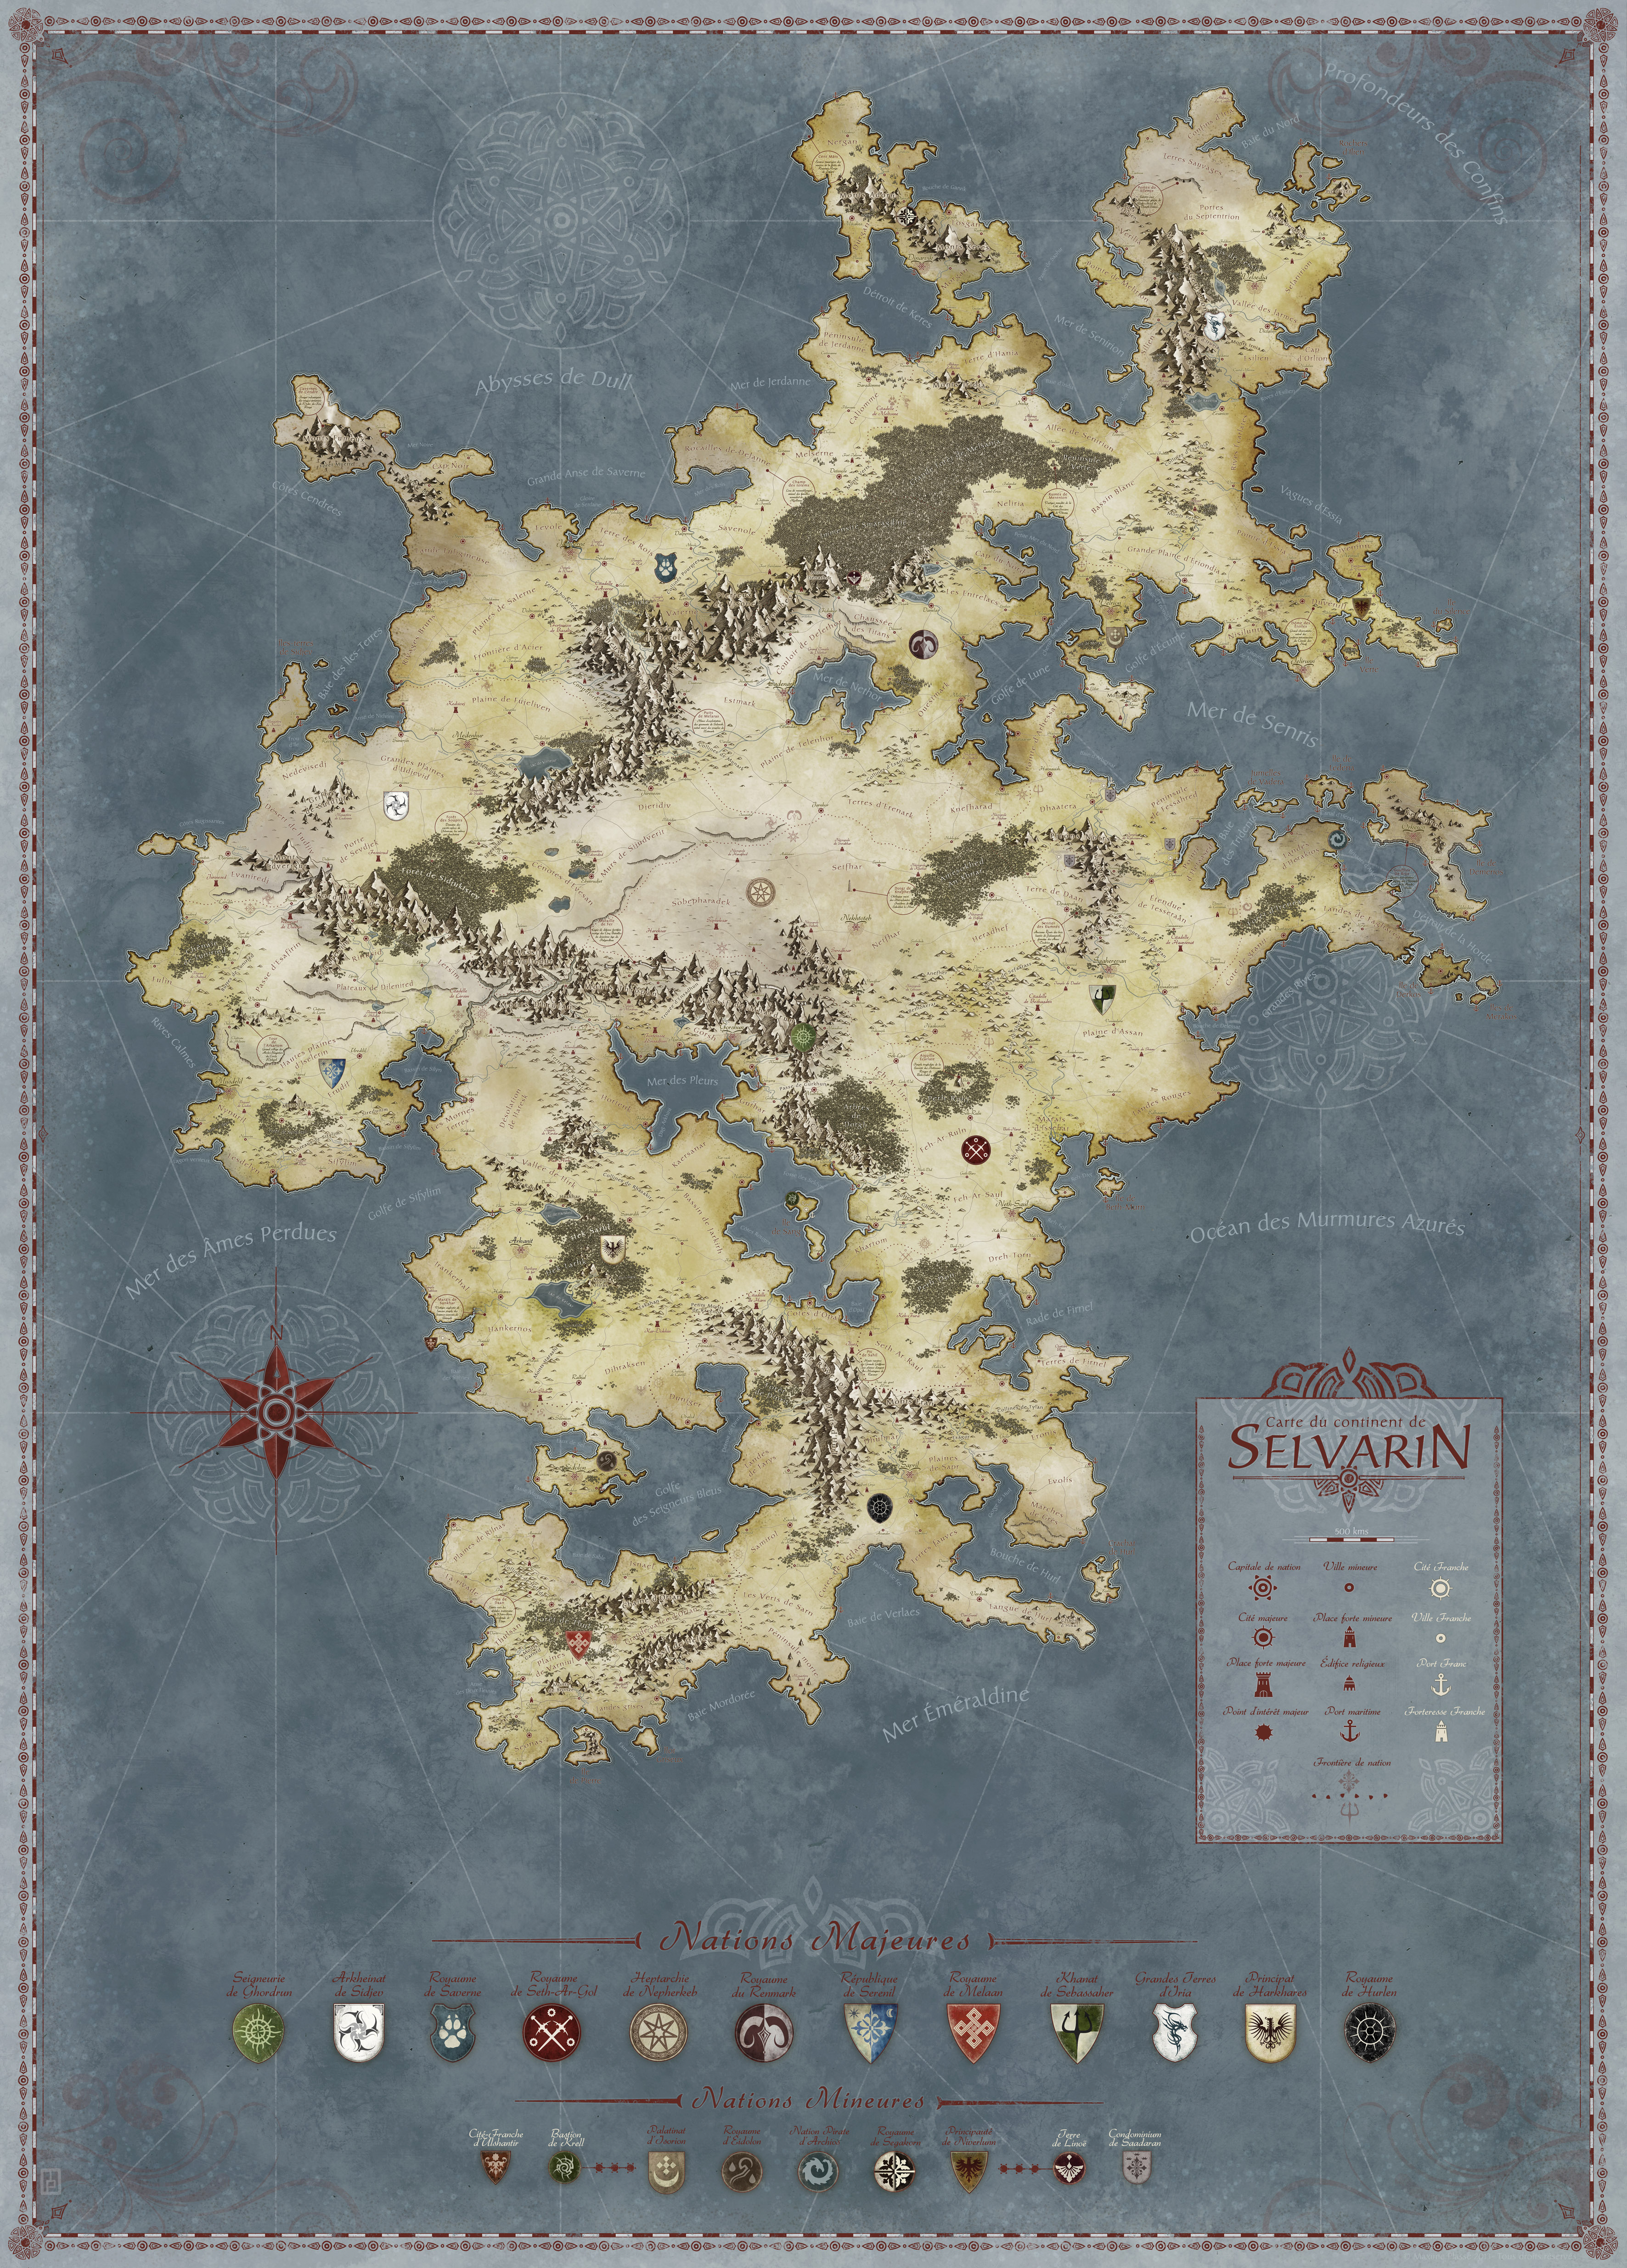 Selvarin - personnal project - Featured map April 2013 - 